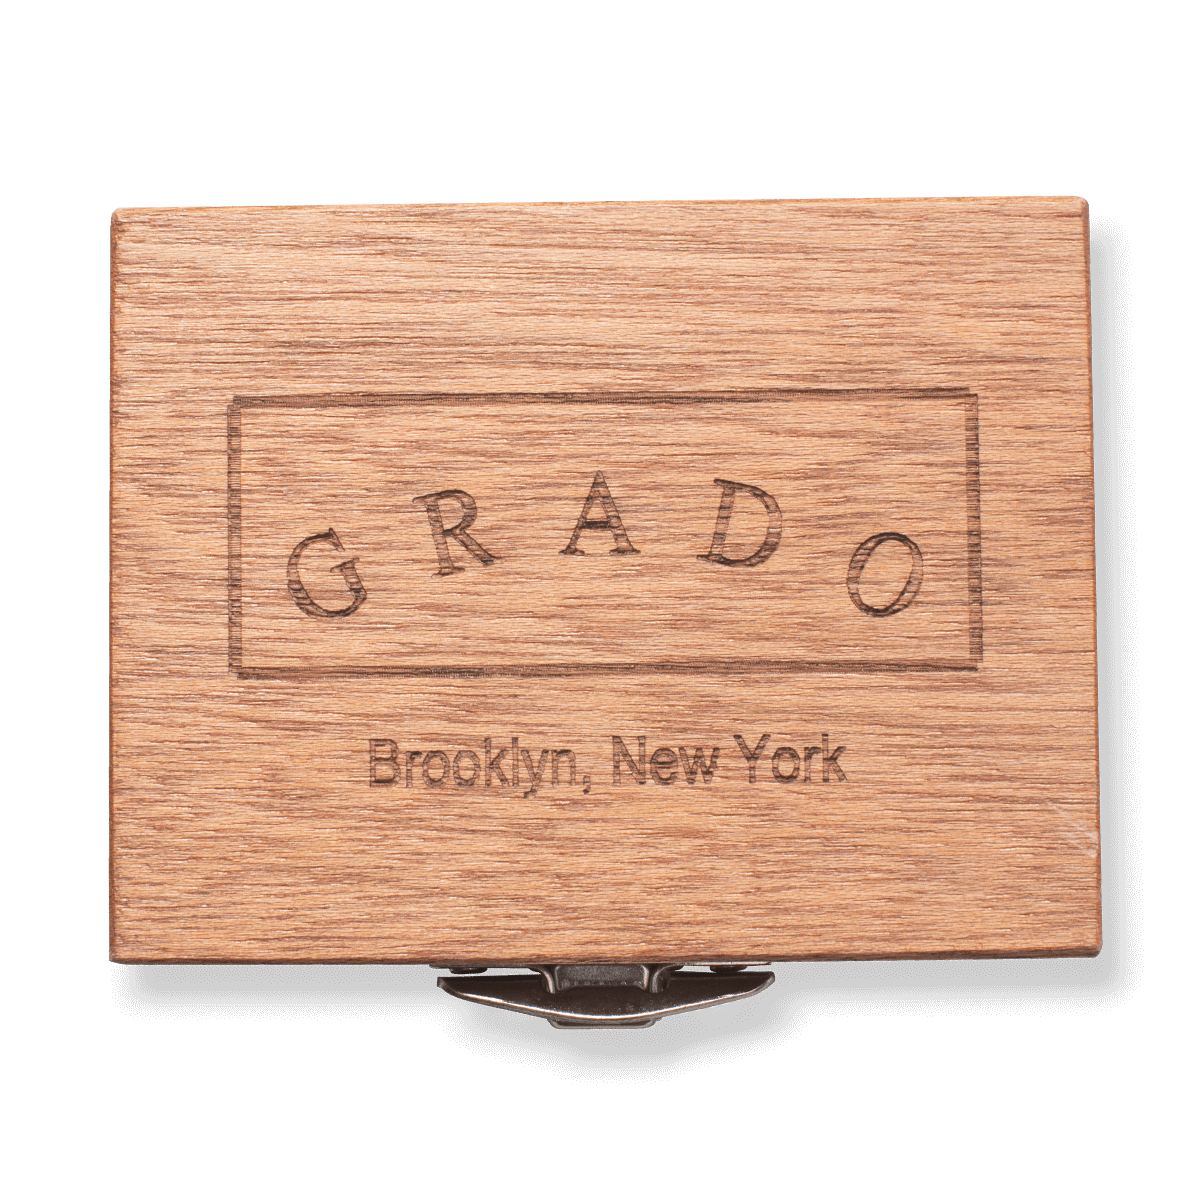 GRADO TIMBRE SERIES THE REFERENCE 3